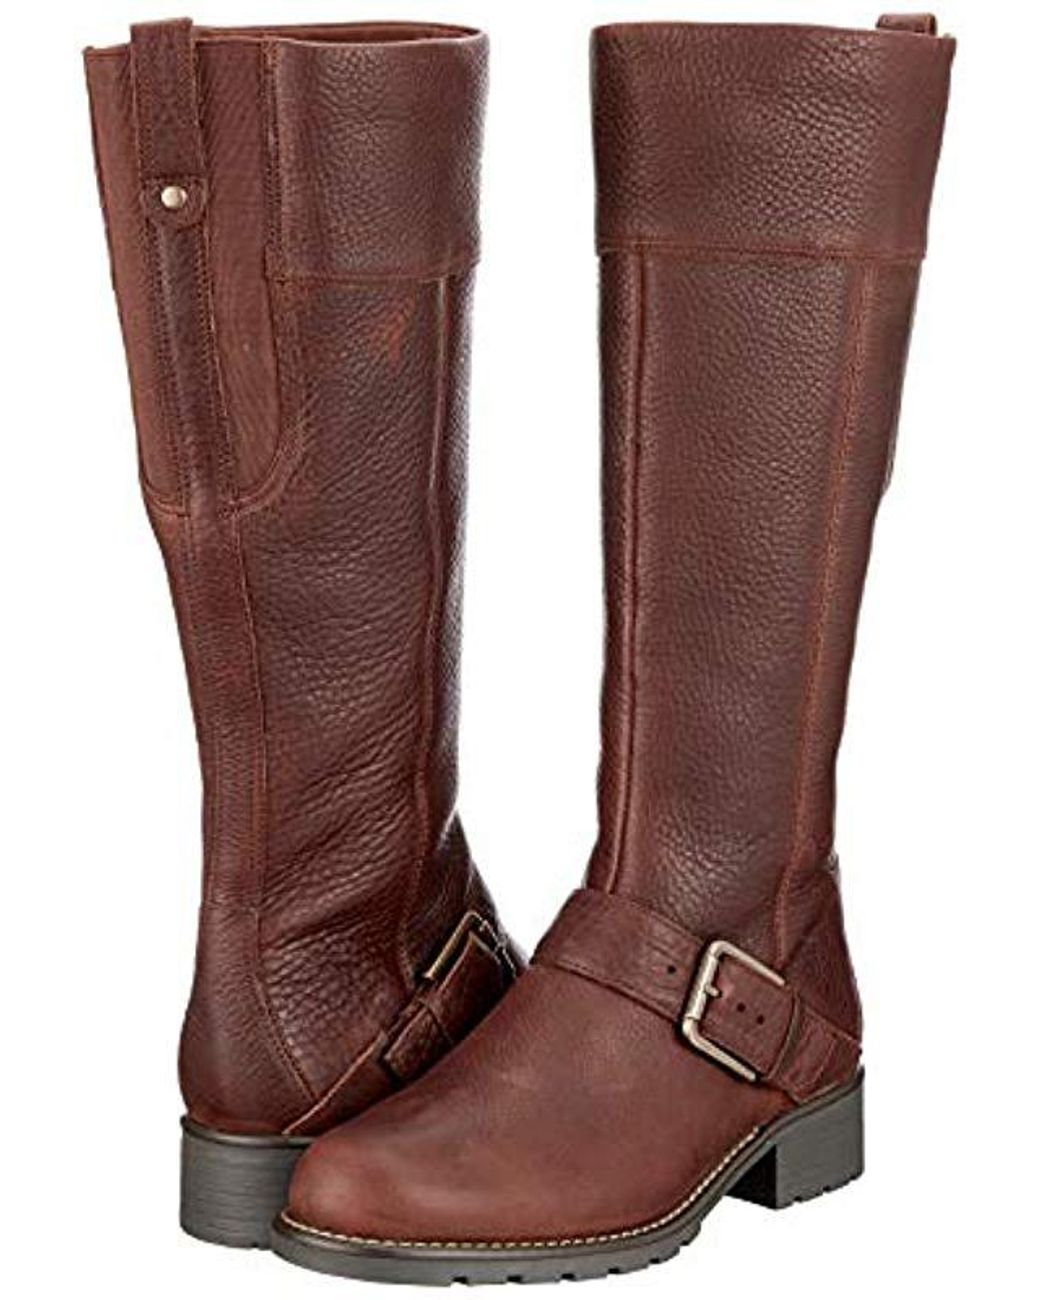 6004282418f Clarks Leather Orinoco Jazz Ankle Riding Boots in Brown - Lyst